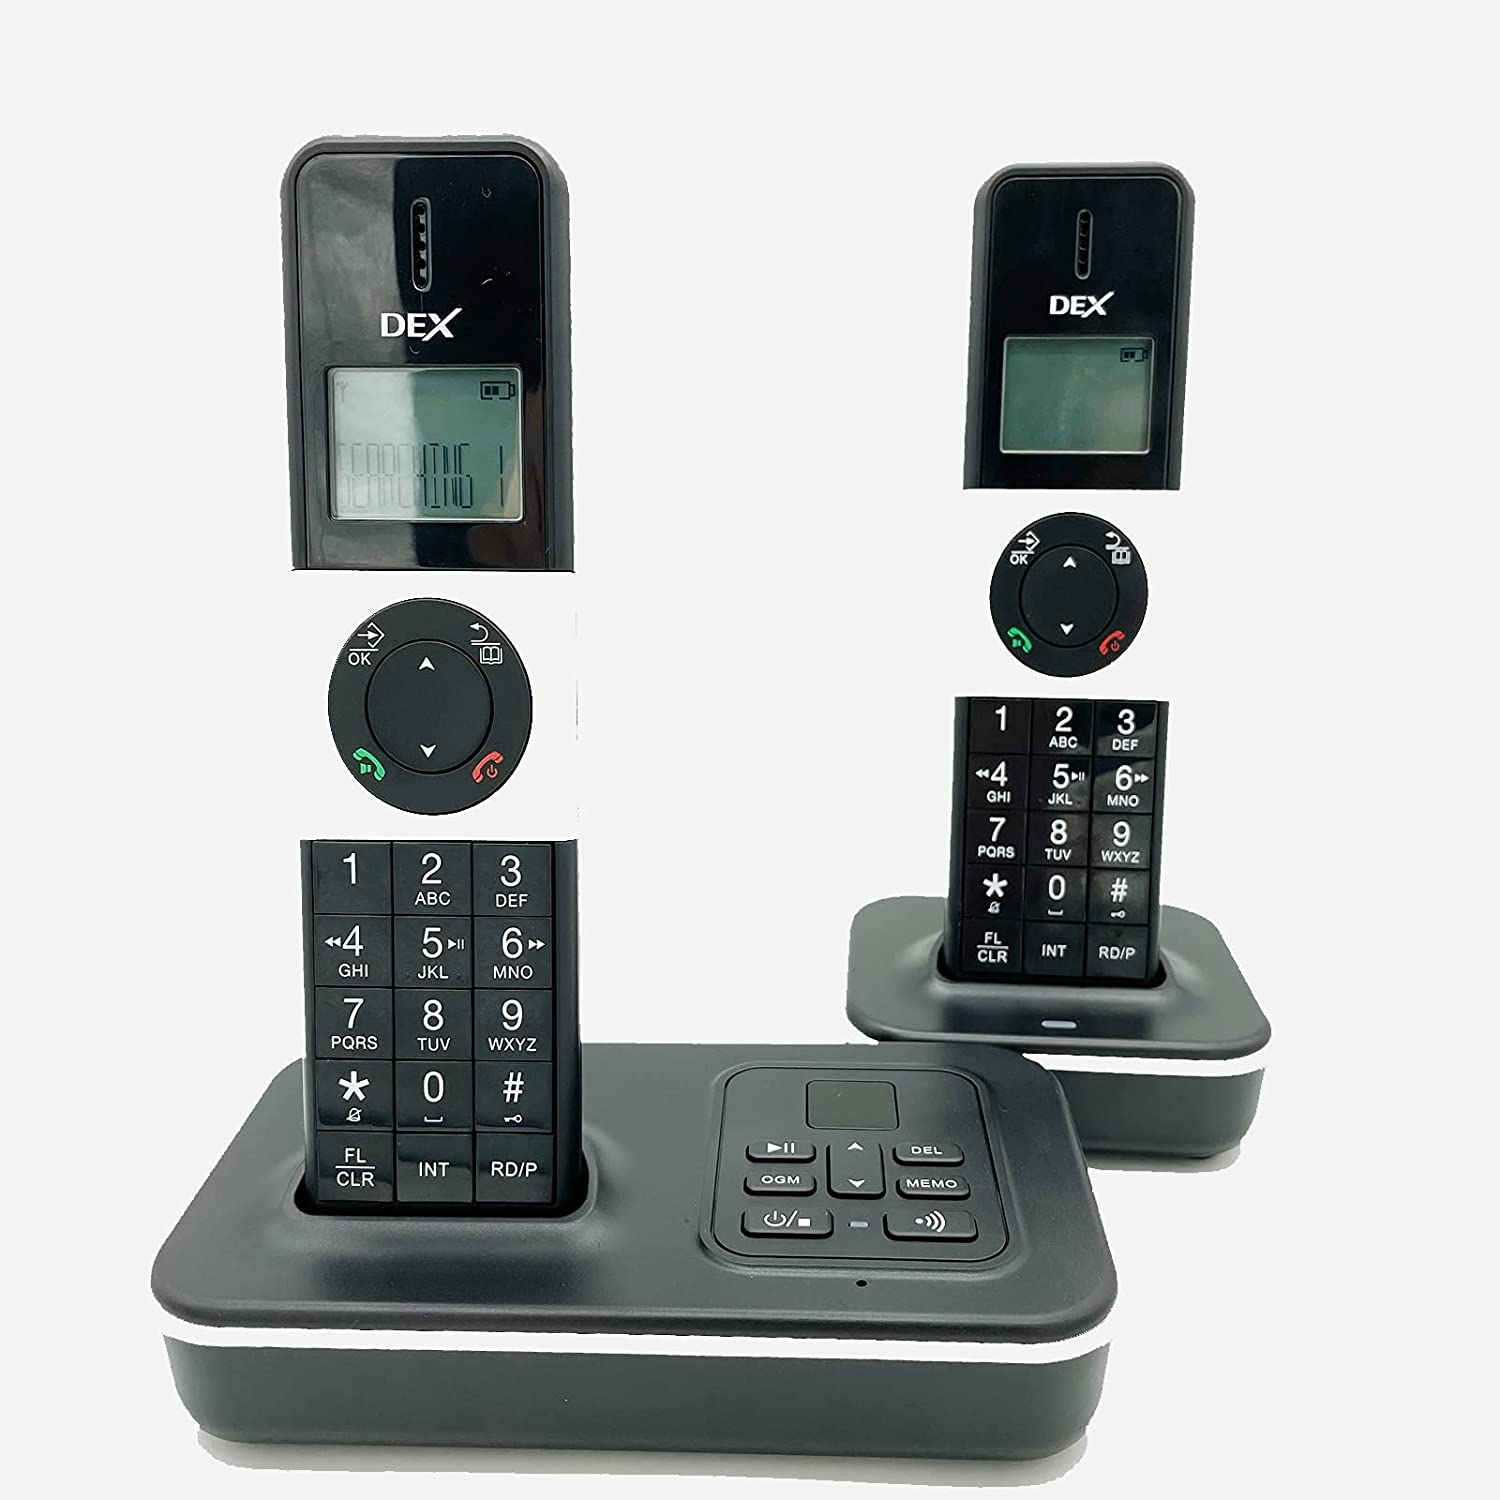 POPTEL DECT 6.0 Bluetooth Cordless Phone with LCD Caller ID/Call Waiting, Black 2 Handset, for Home and Office,PSTN